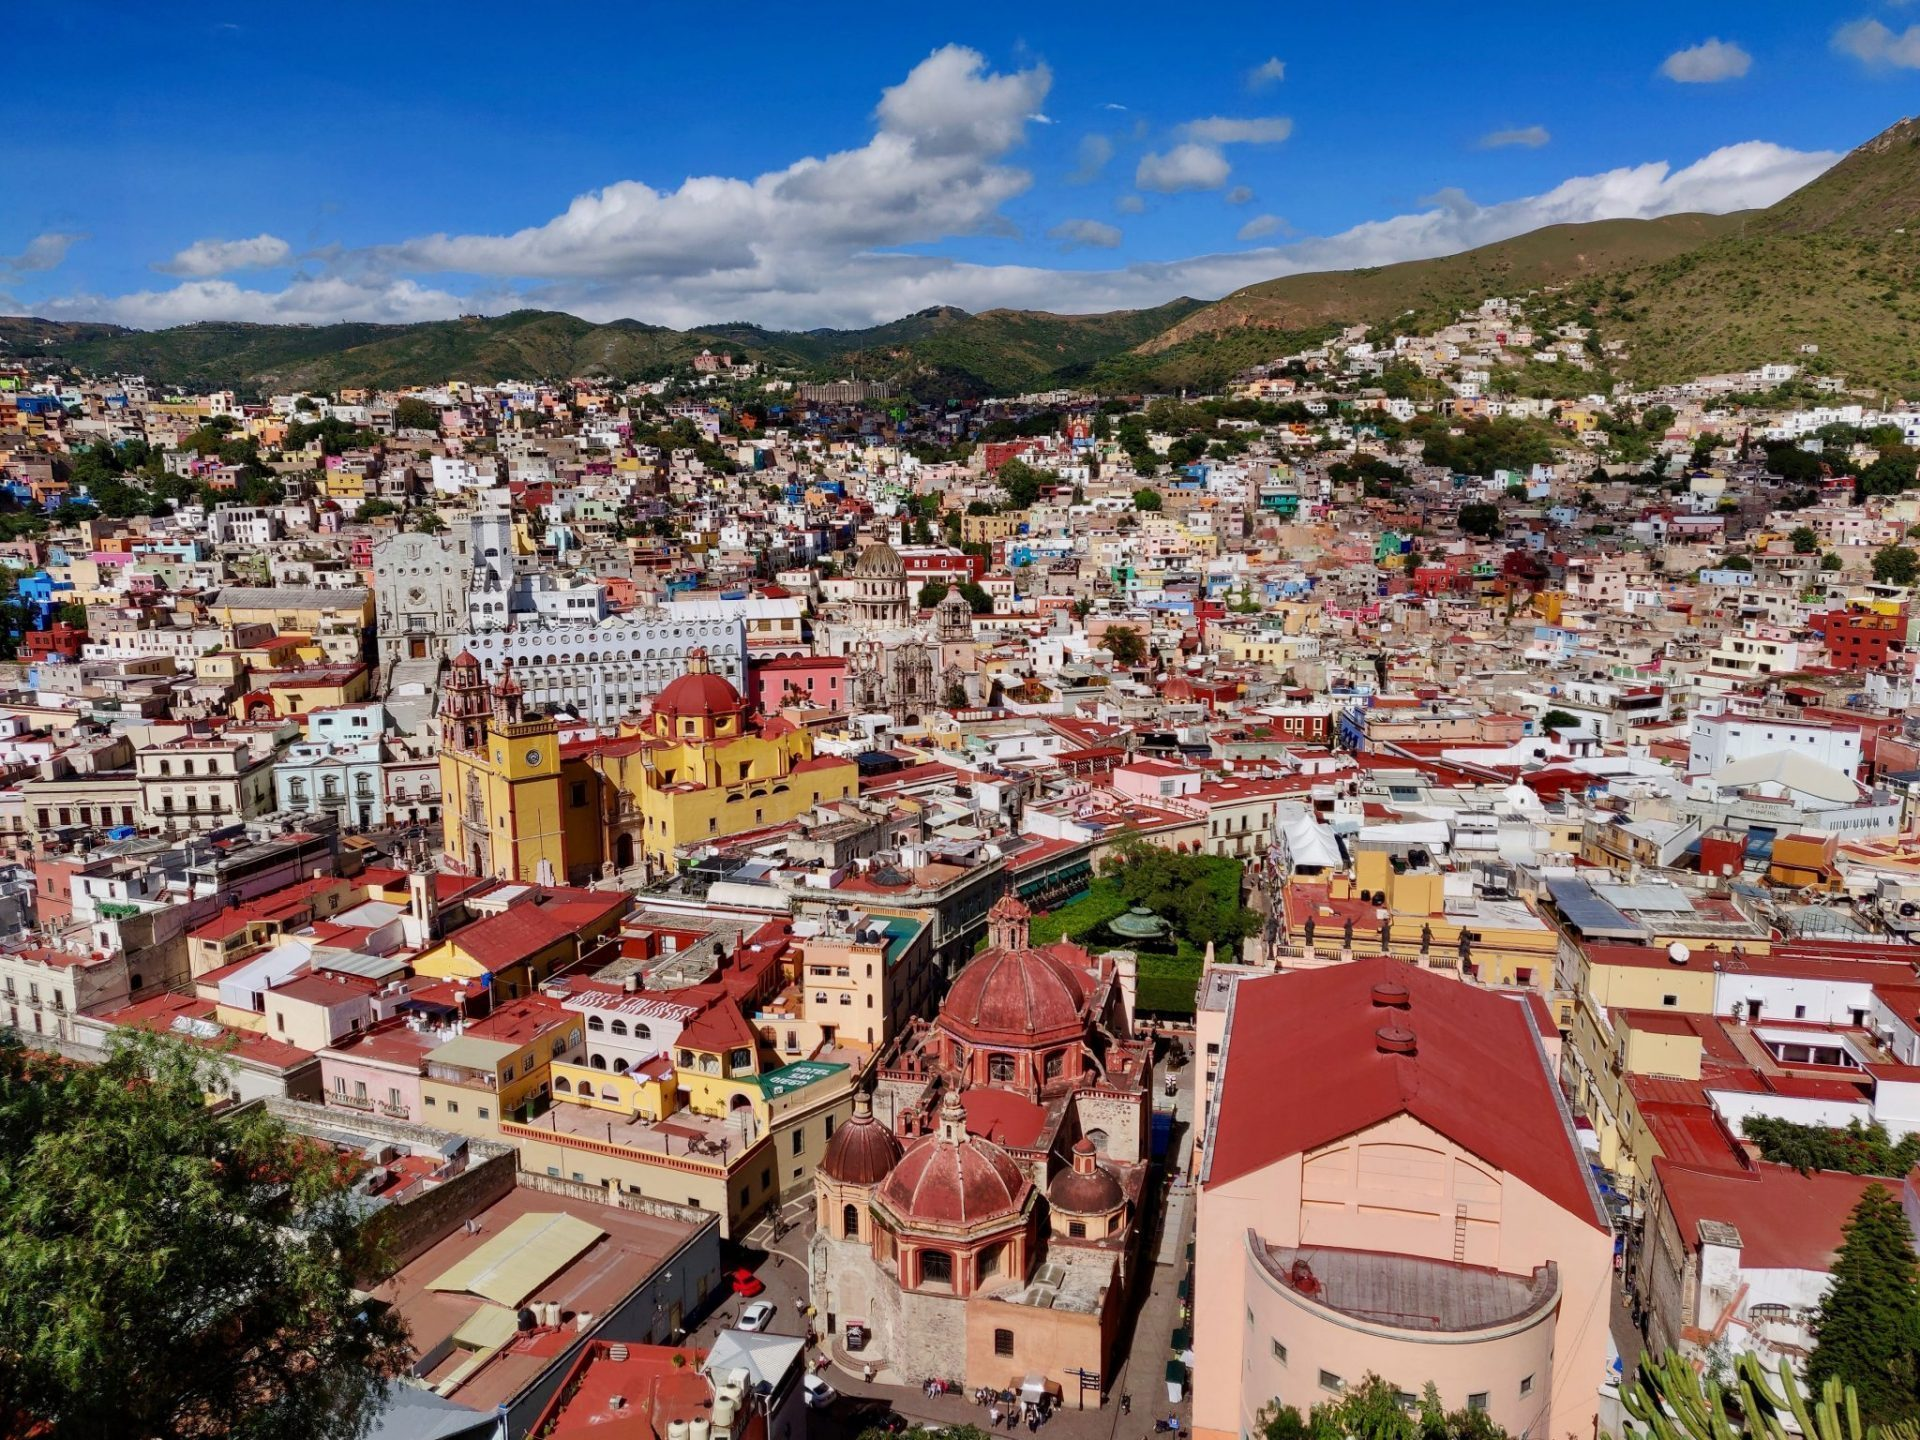 View of colorful buildings in Guanajuato Mexico